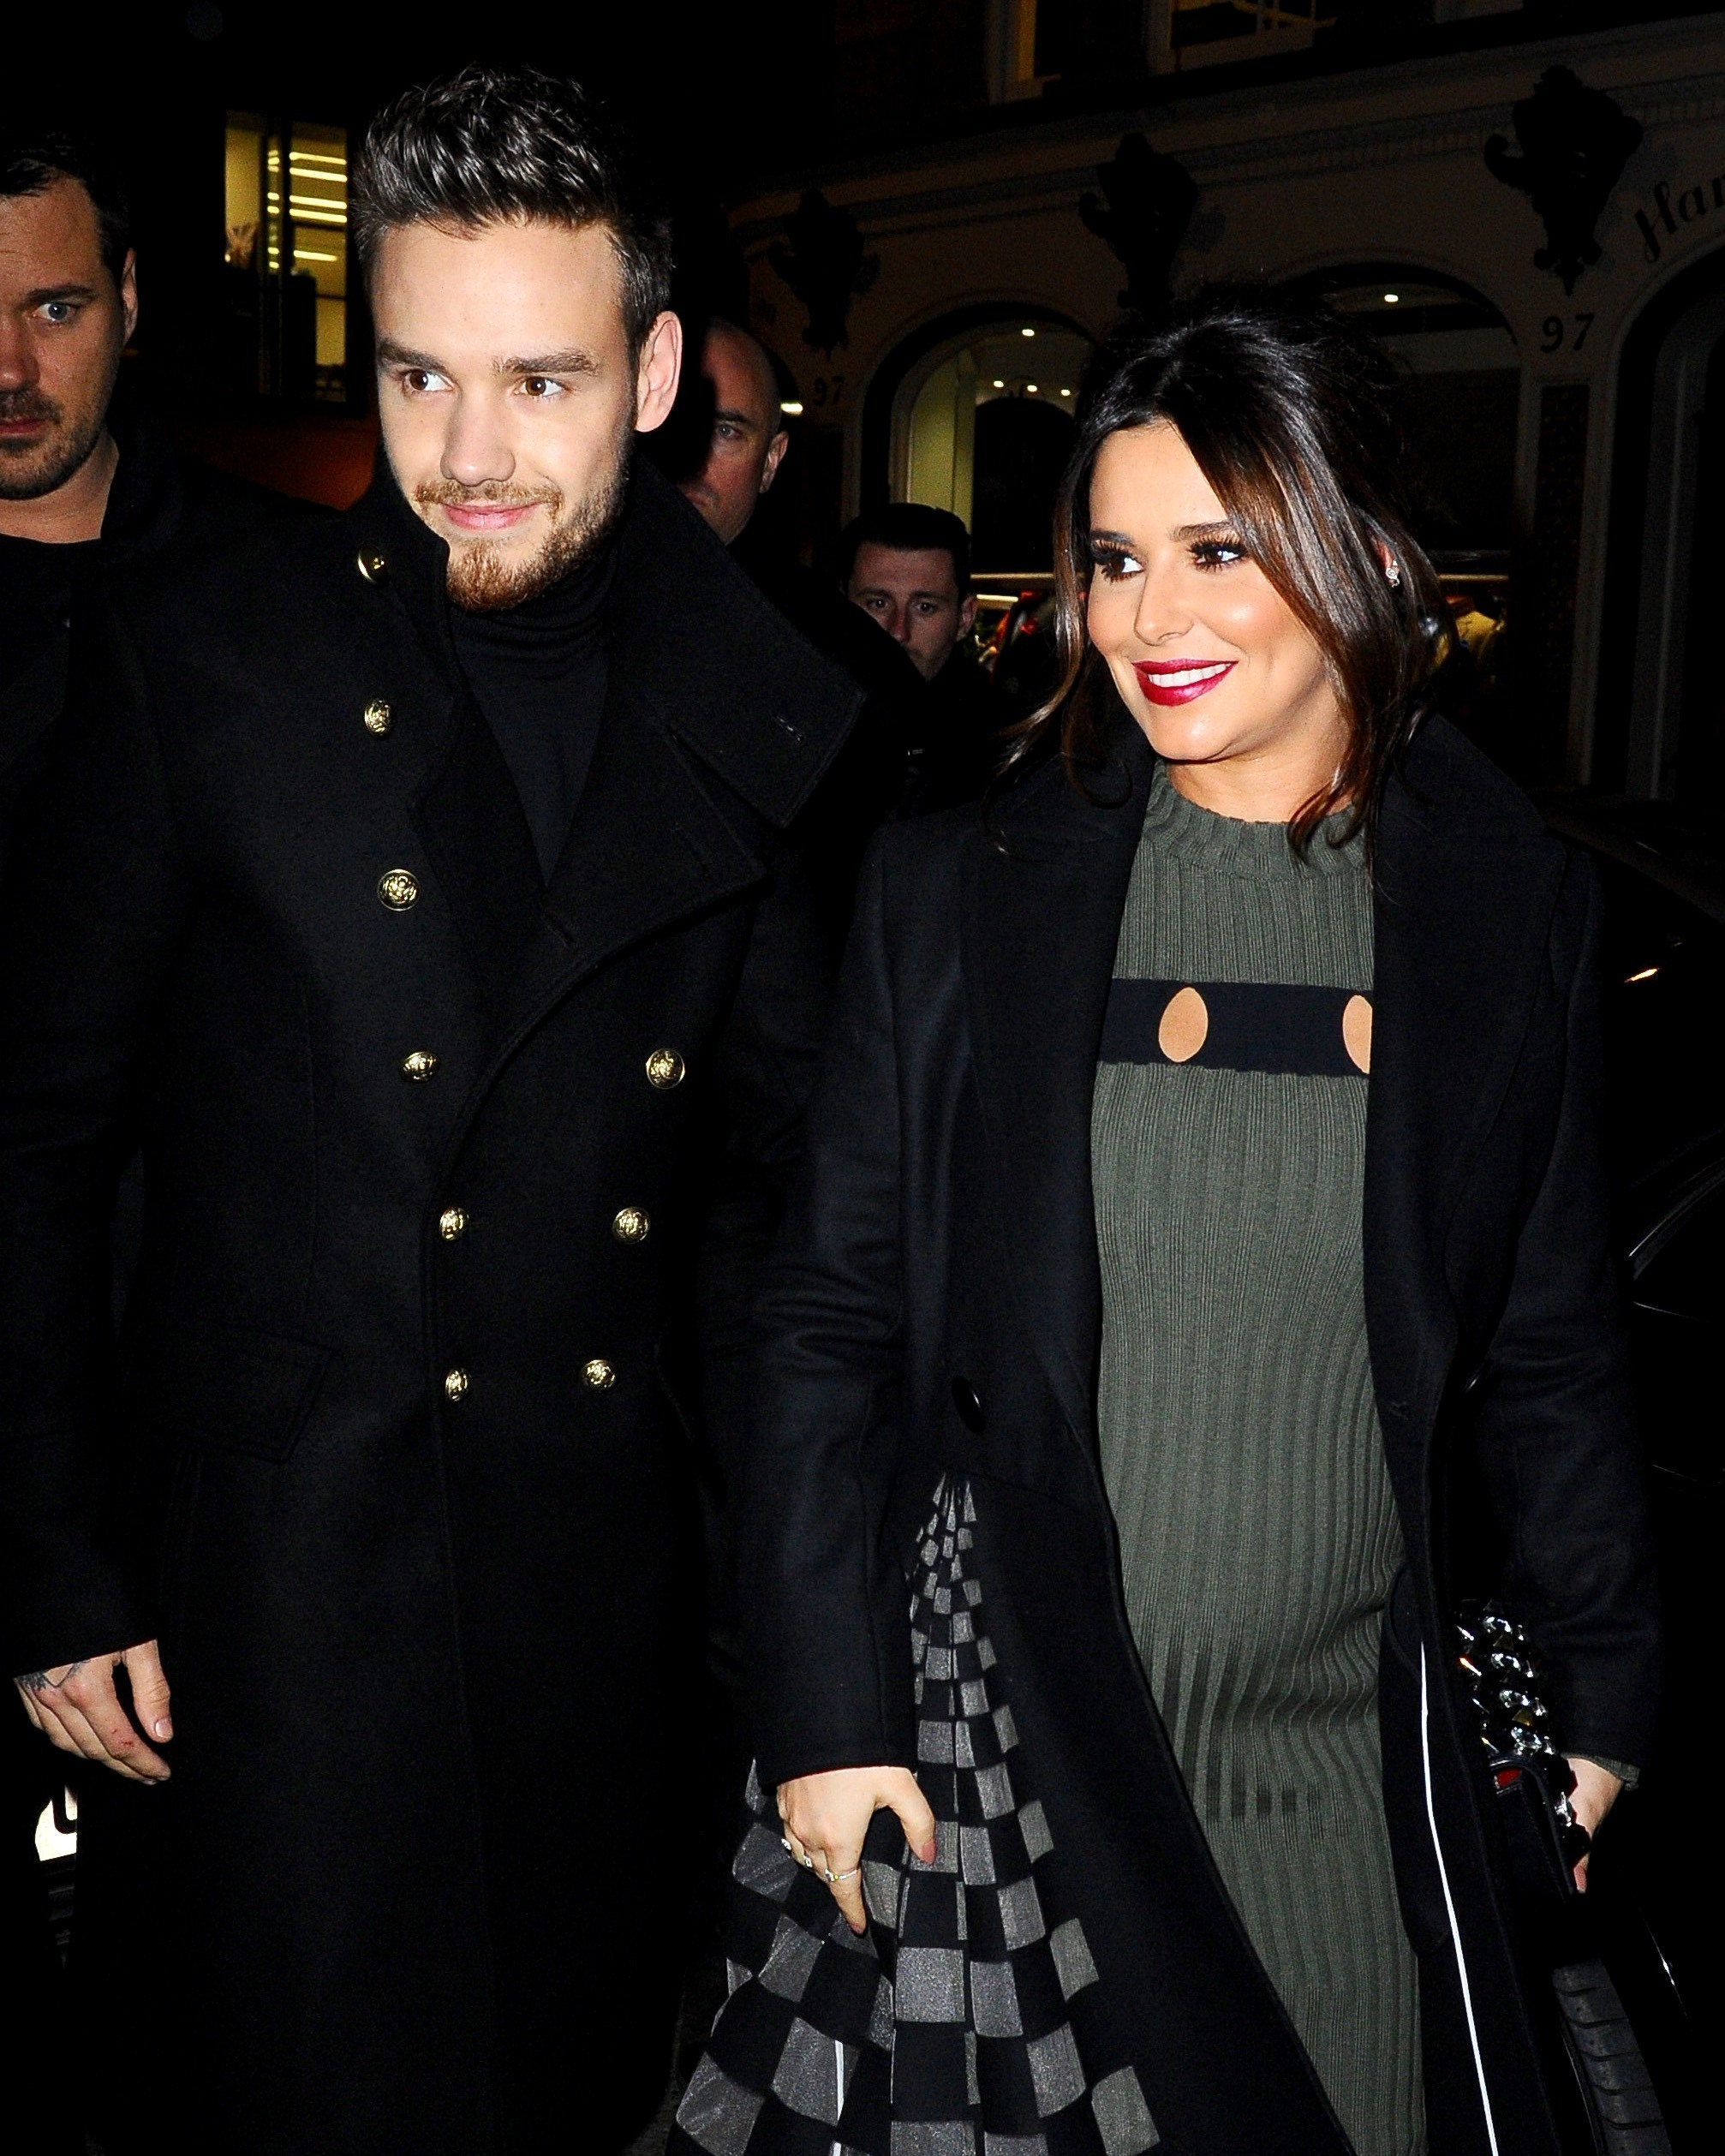 Picture Shows: Liam Payne, Cheryl Fernandez Versini November 29, 2016 Cheryl Fernandez Versini and Liam Payne arrive at Fayre of St James Christmas Carol Concert in London, UK. Non Exclusive WORLDWIDE RIGHTS Pictures by : FameFlynet UK © 2016 Tel : +44 (0)20 3551 5049 Email : info@fameflynet.uk.com